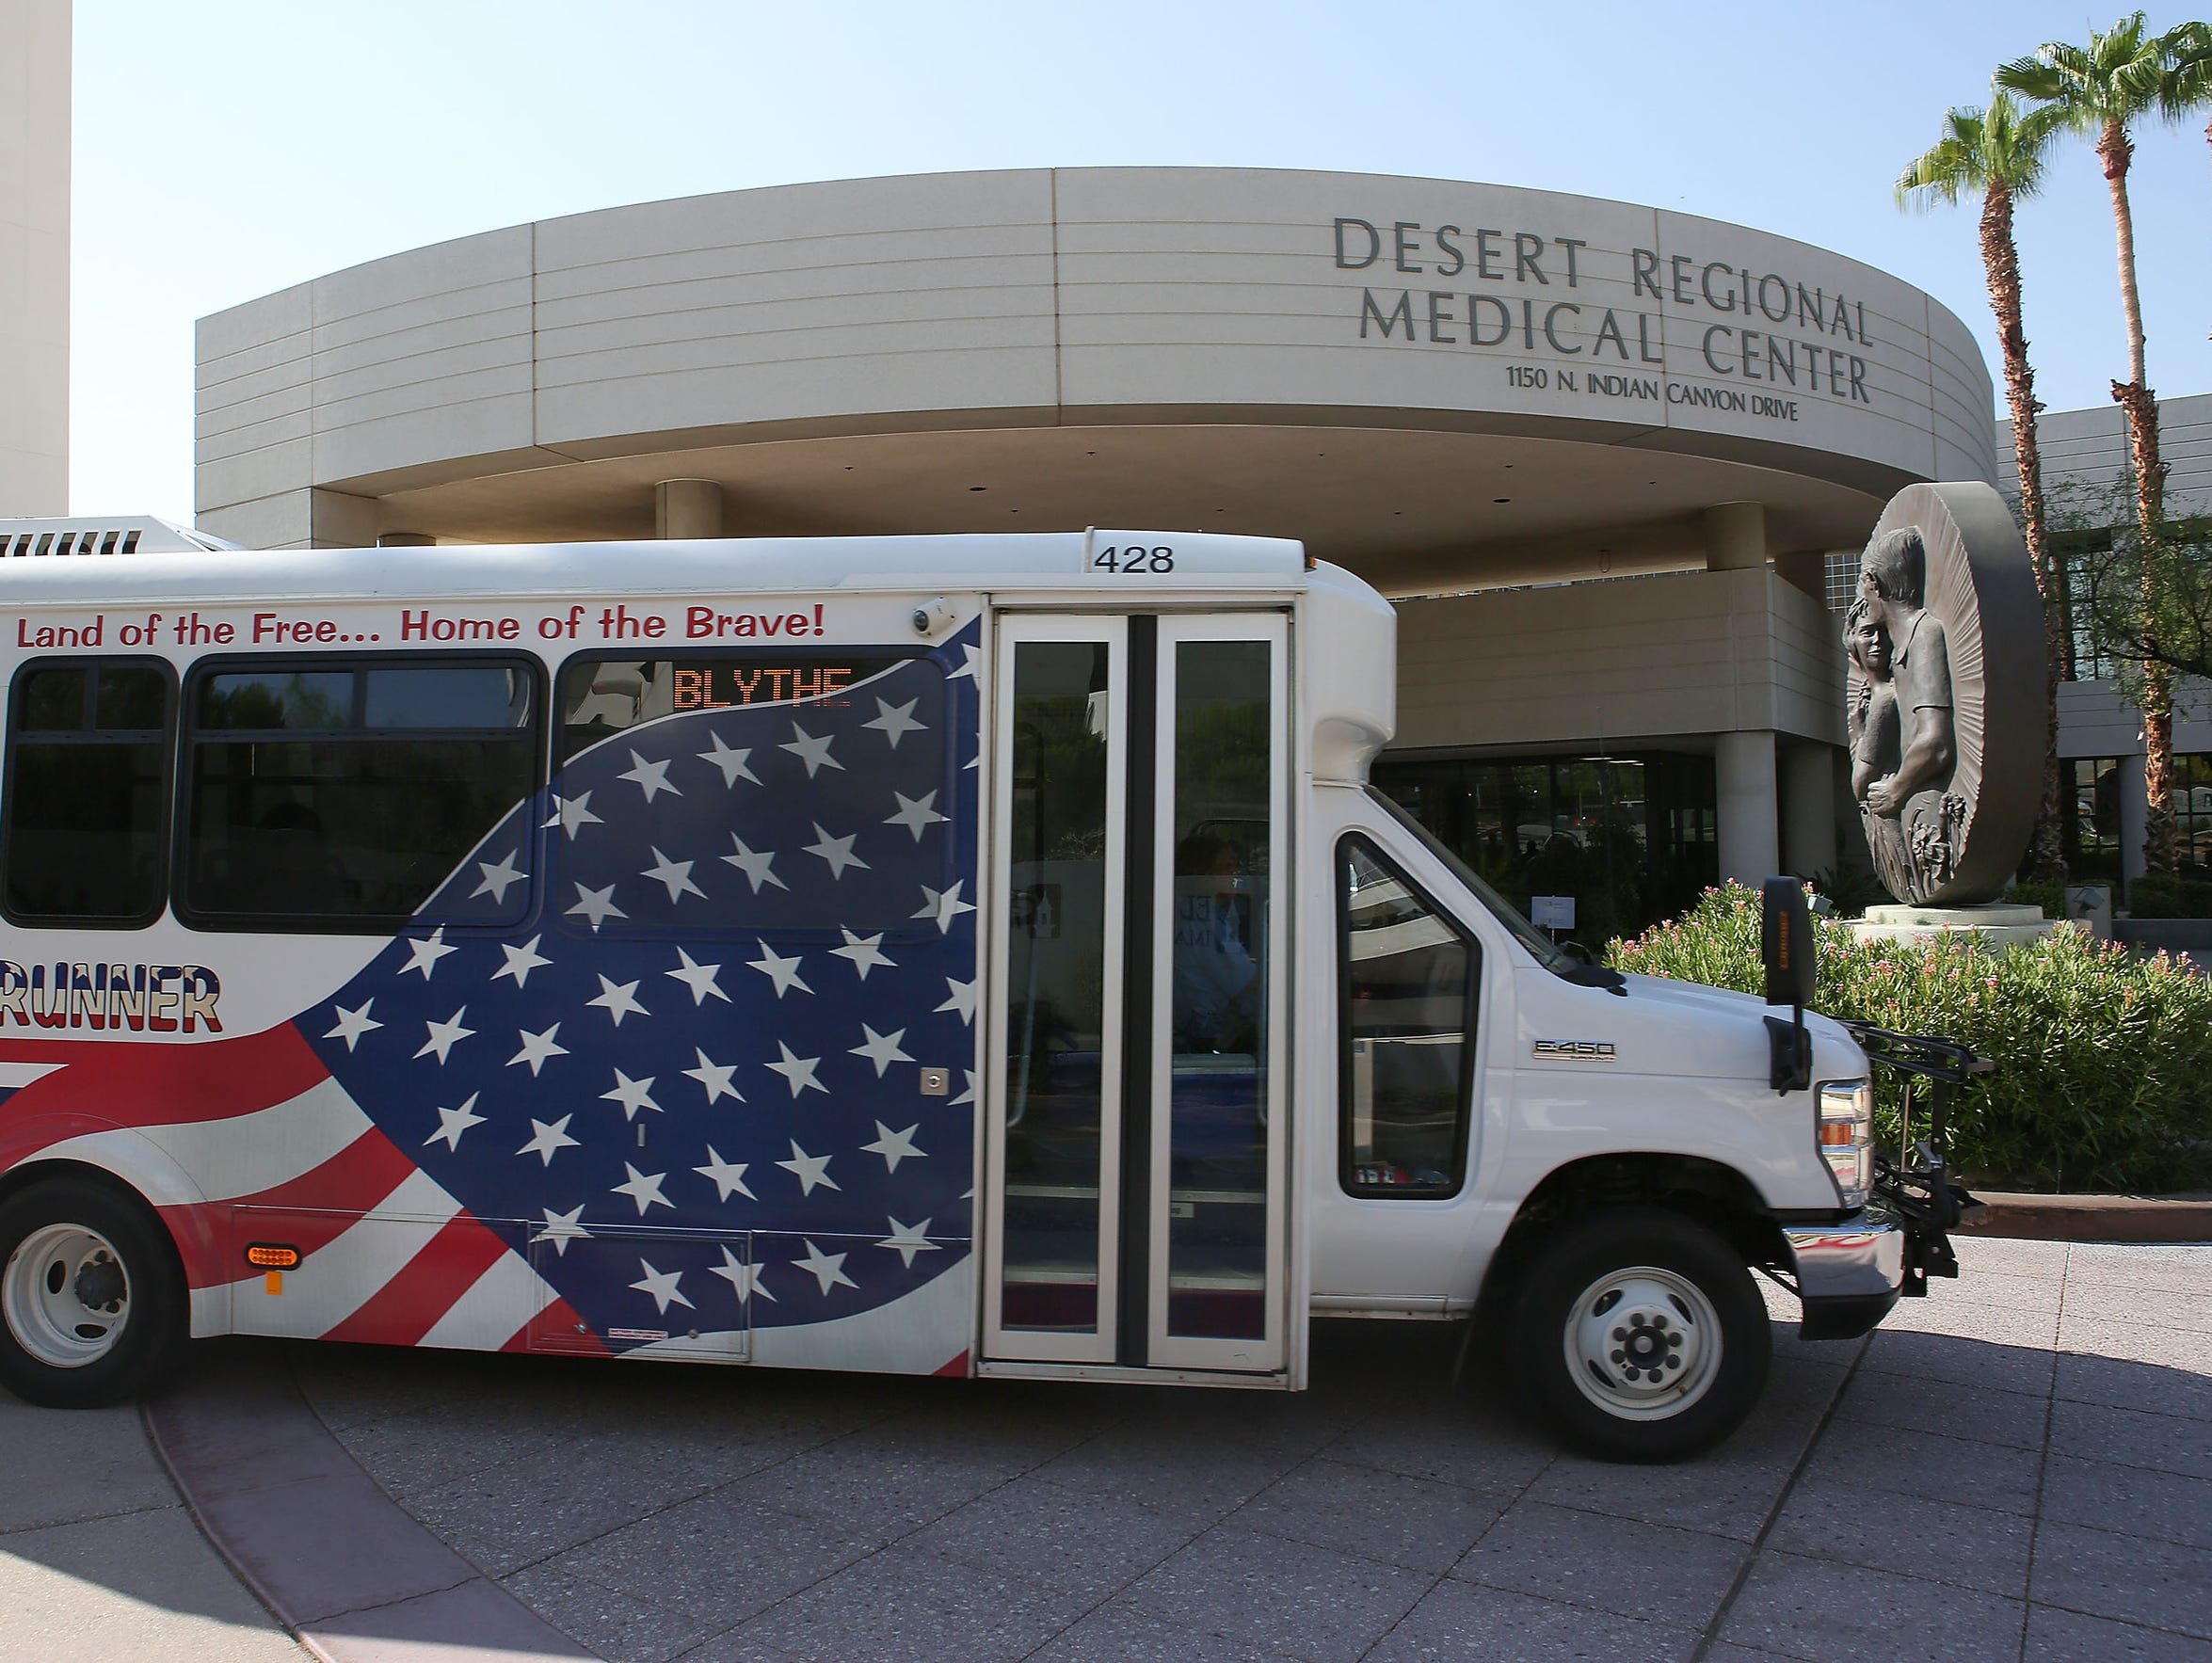 The Blythe Wellness Express brings patients from Blythe